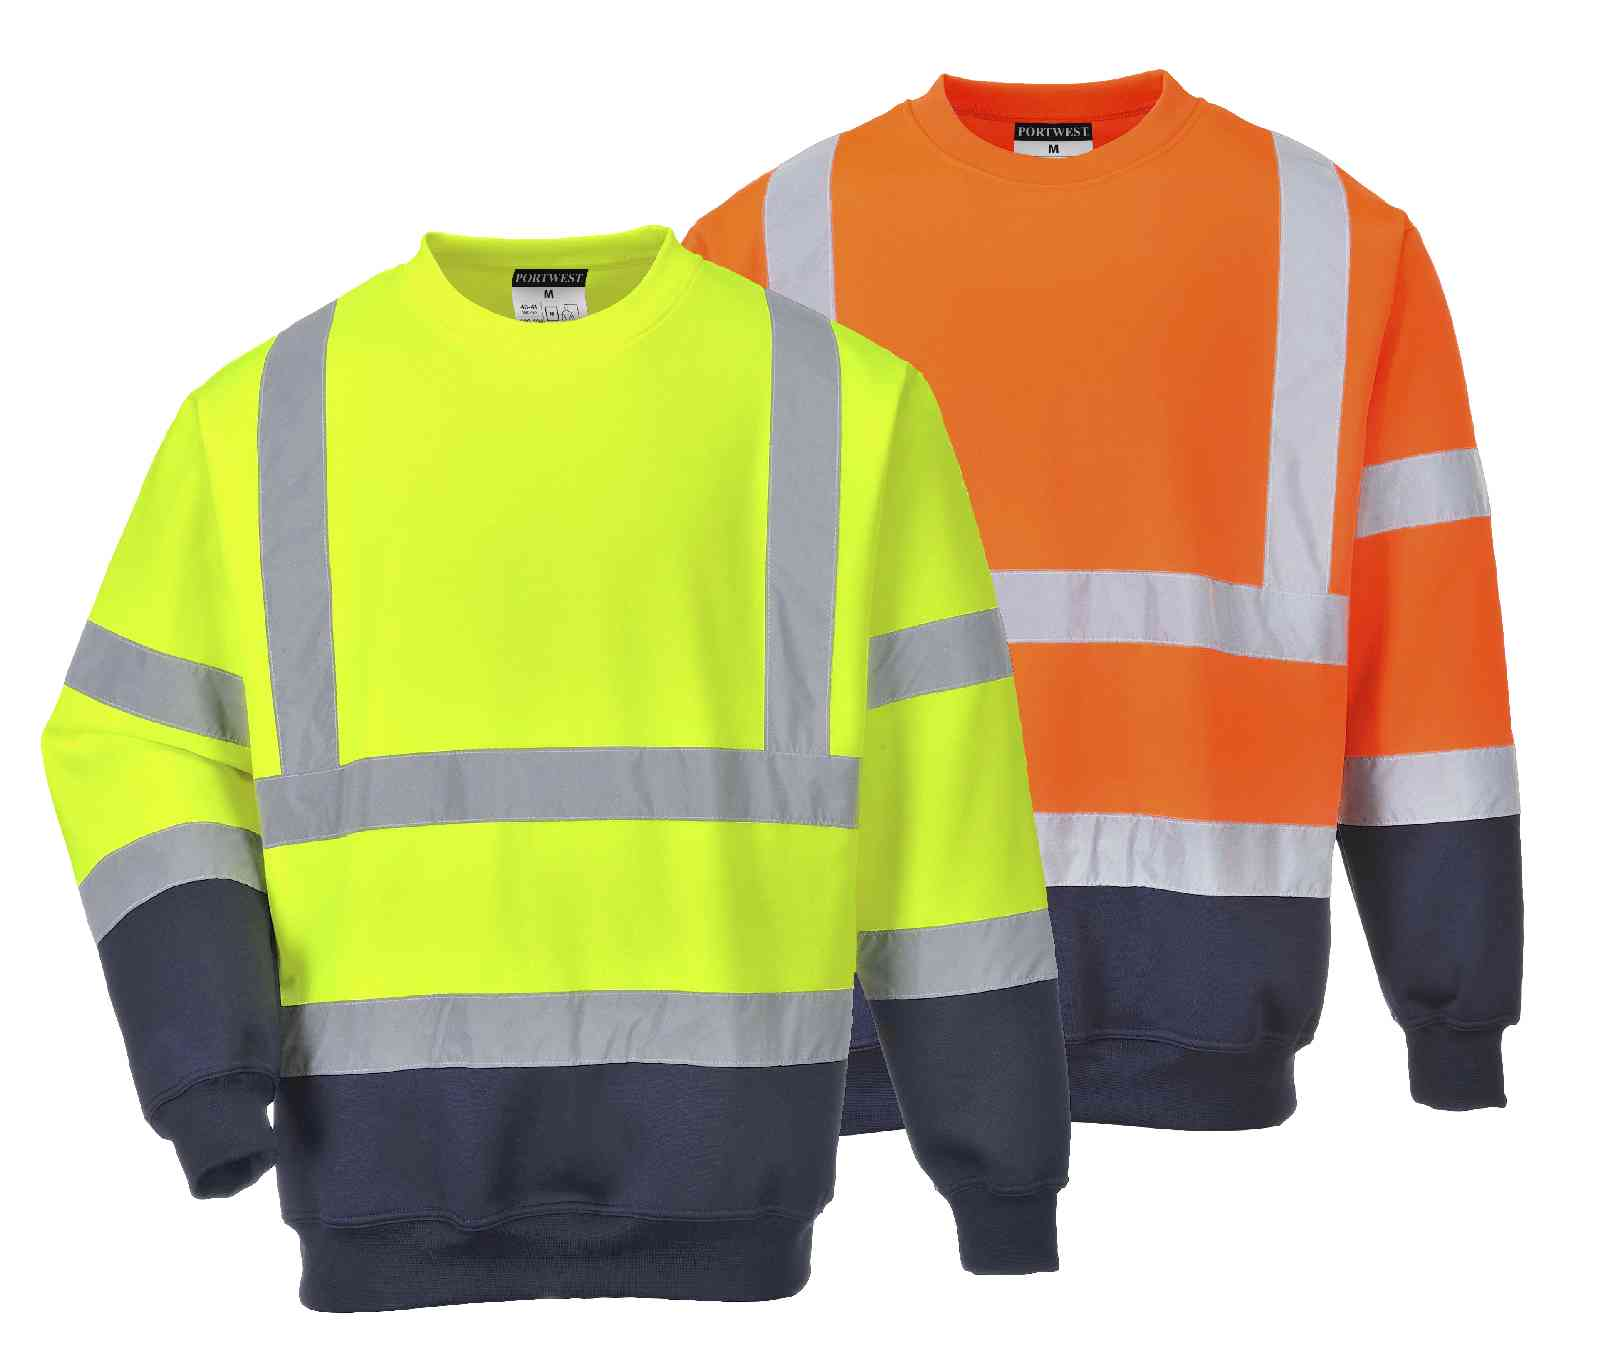 b306 two tone hi vis sweatshirt portwest 1801 p